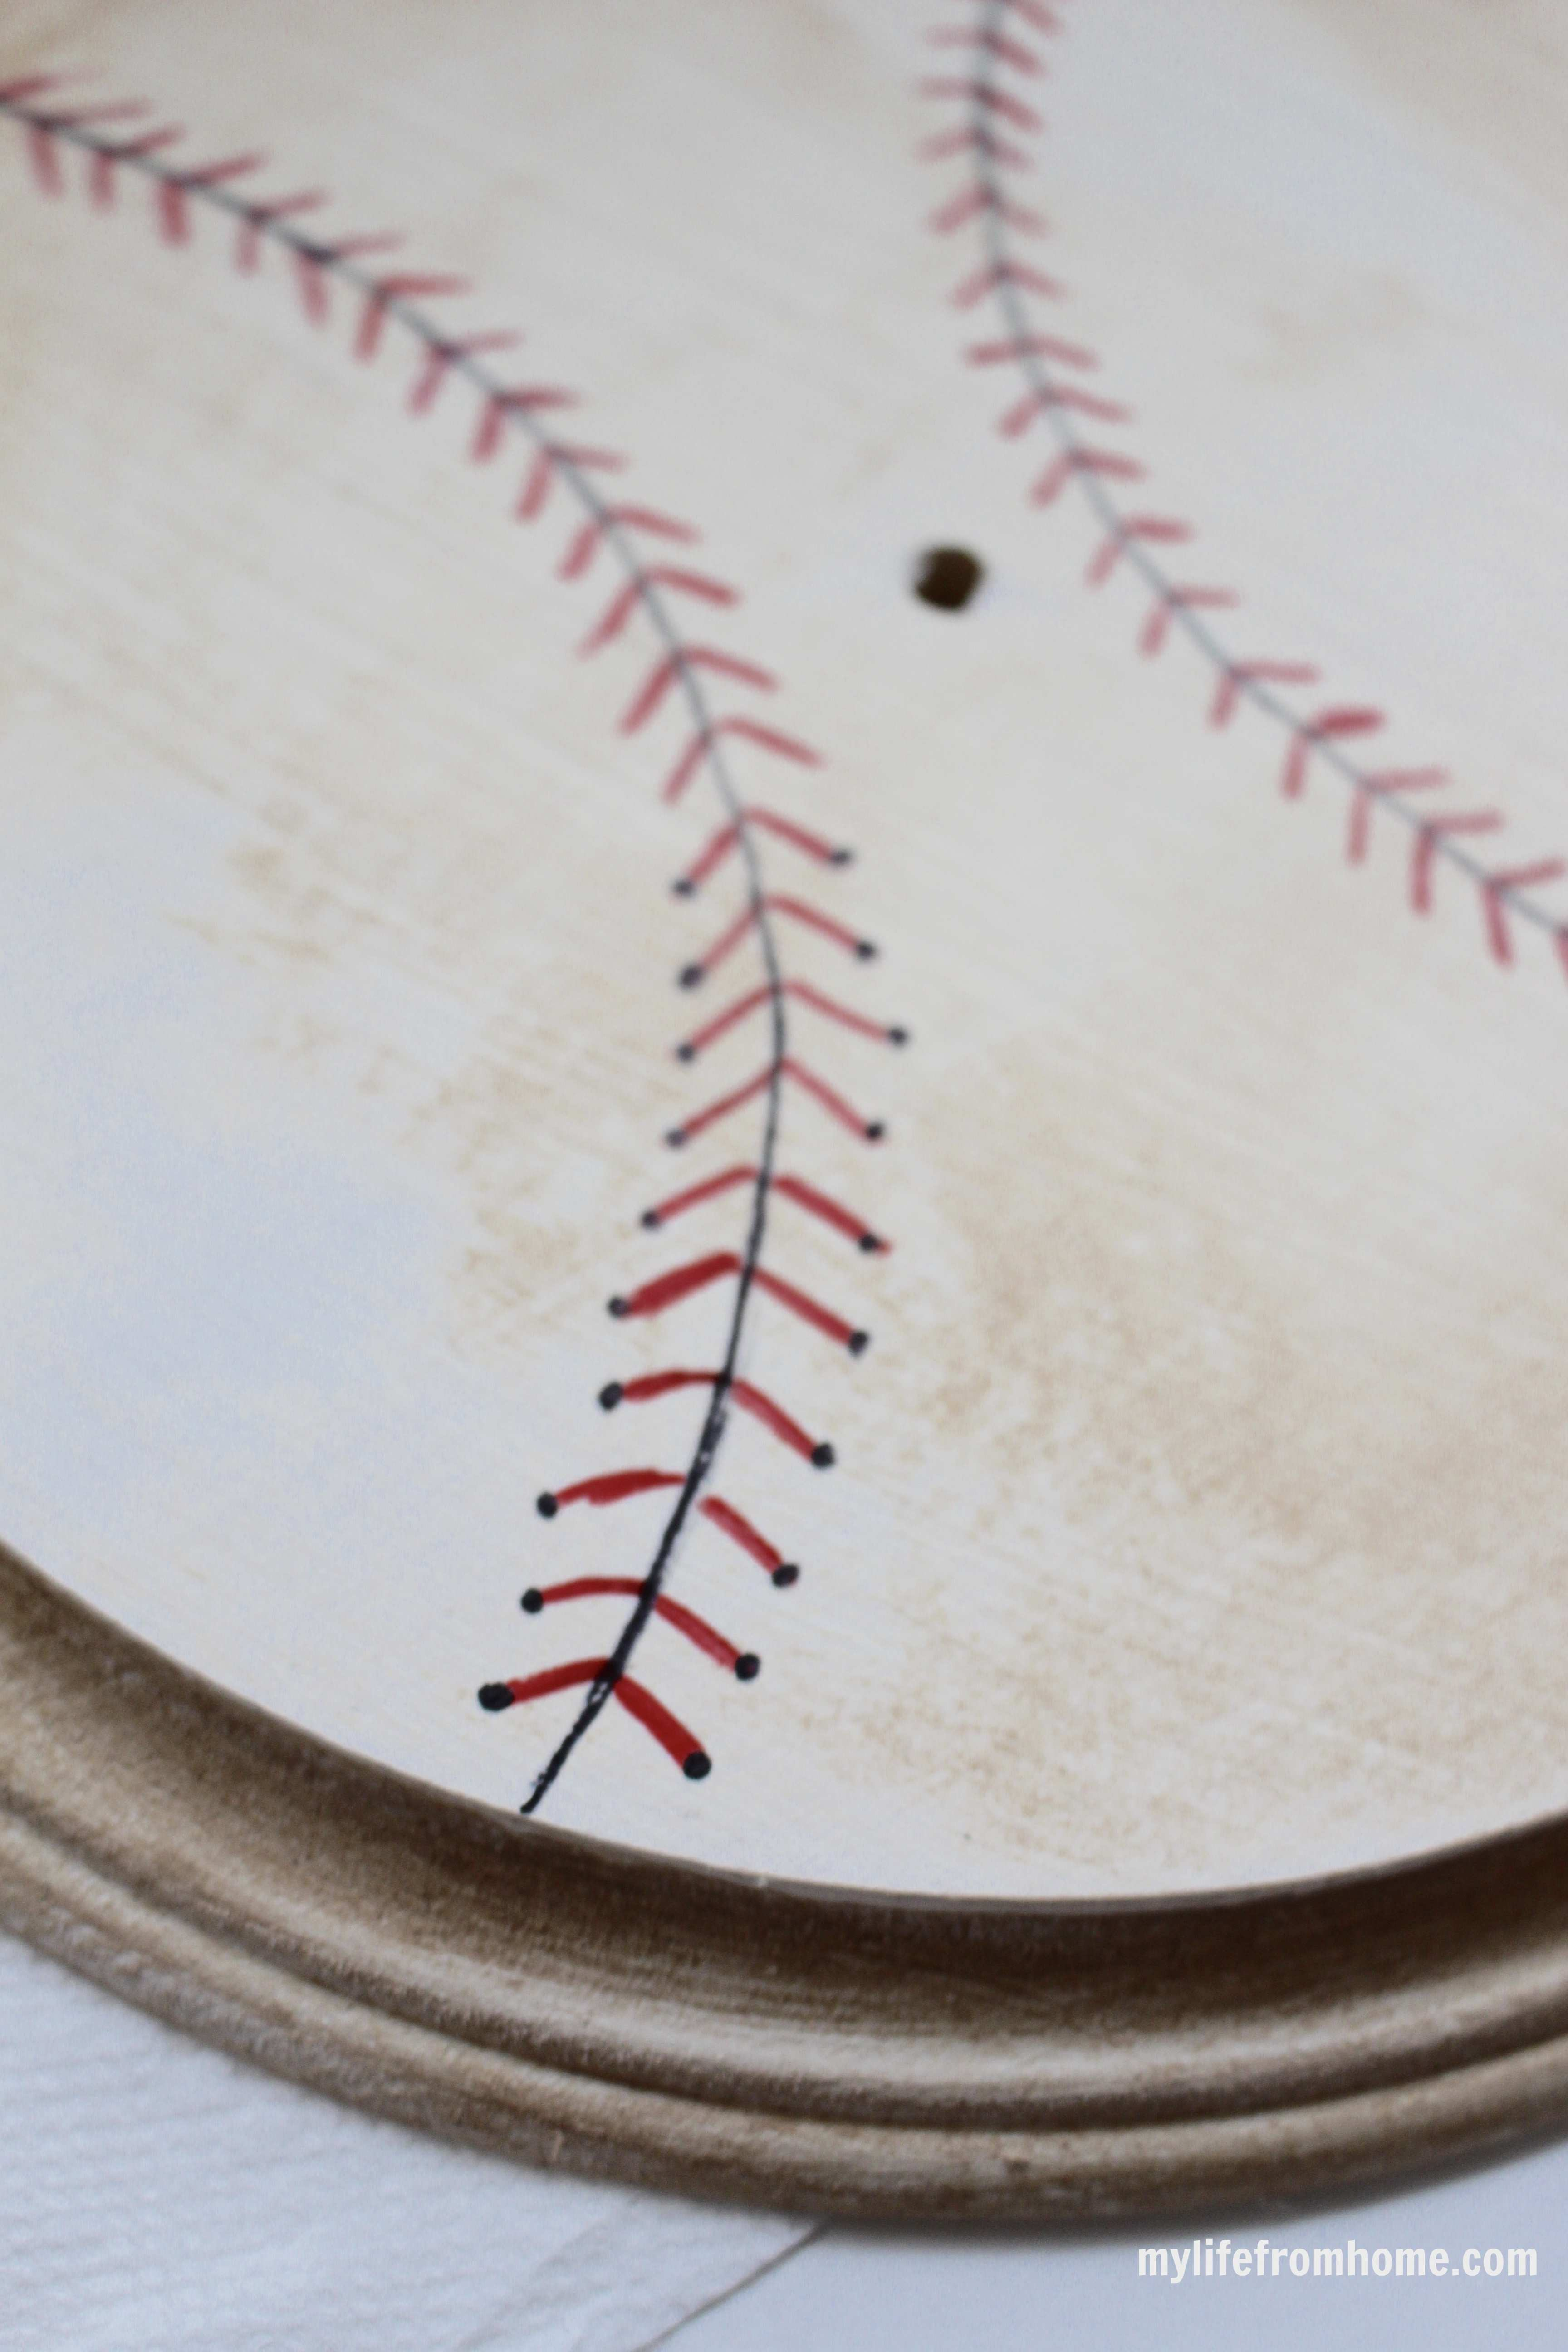 Pencil Lines and Baseball Stitches by www.mylifefromhome.com